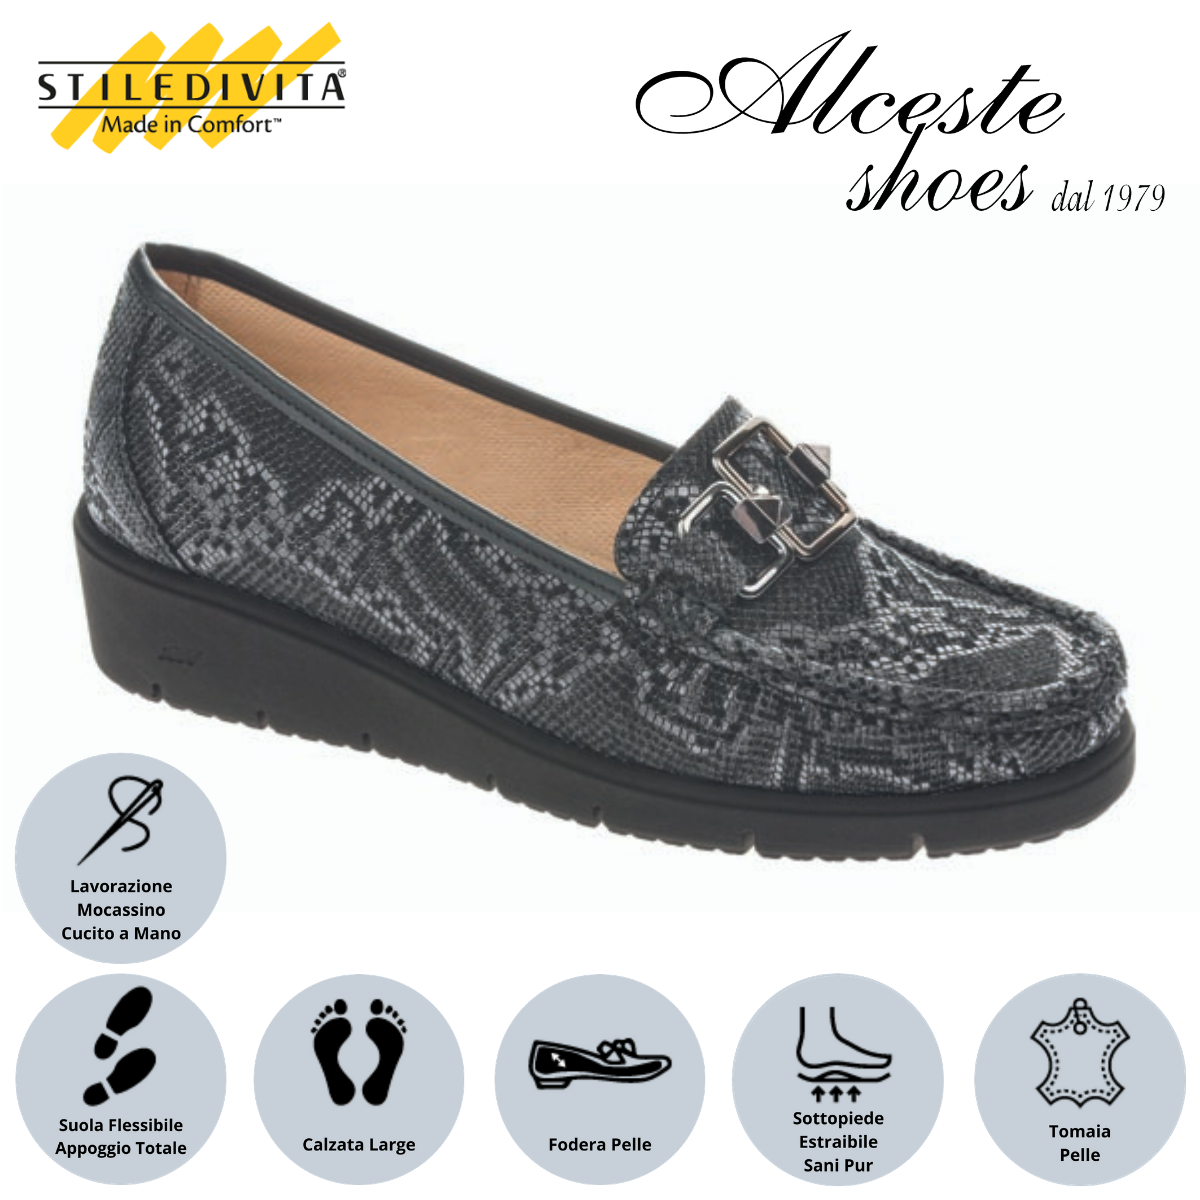 Mocassino Stiledivita art. 7486 iguana antracite